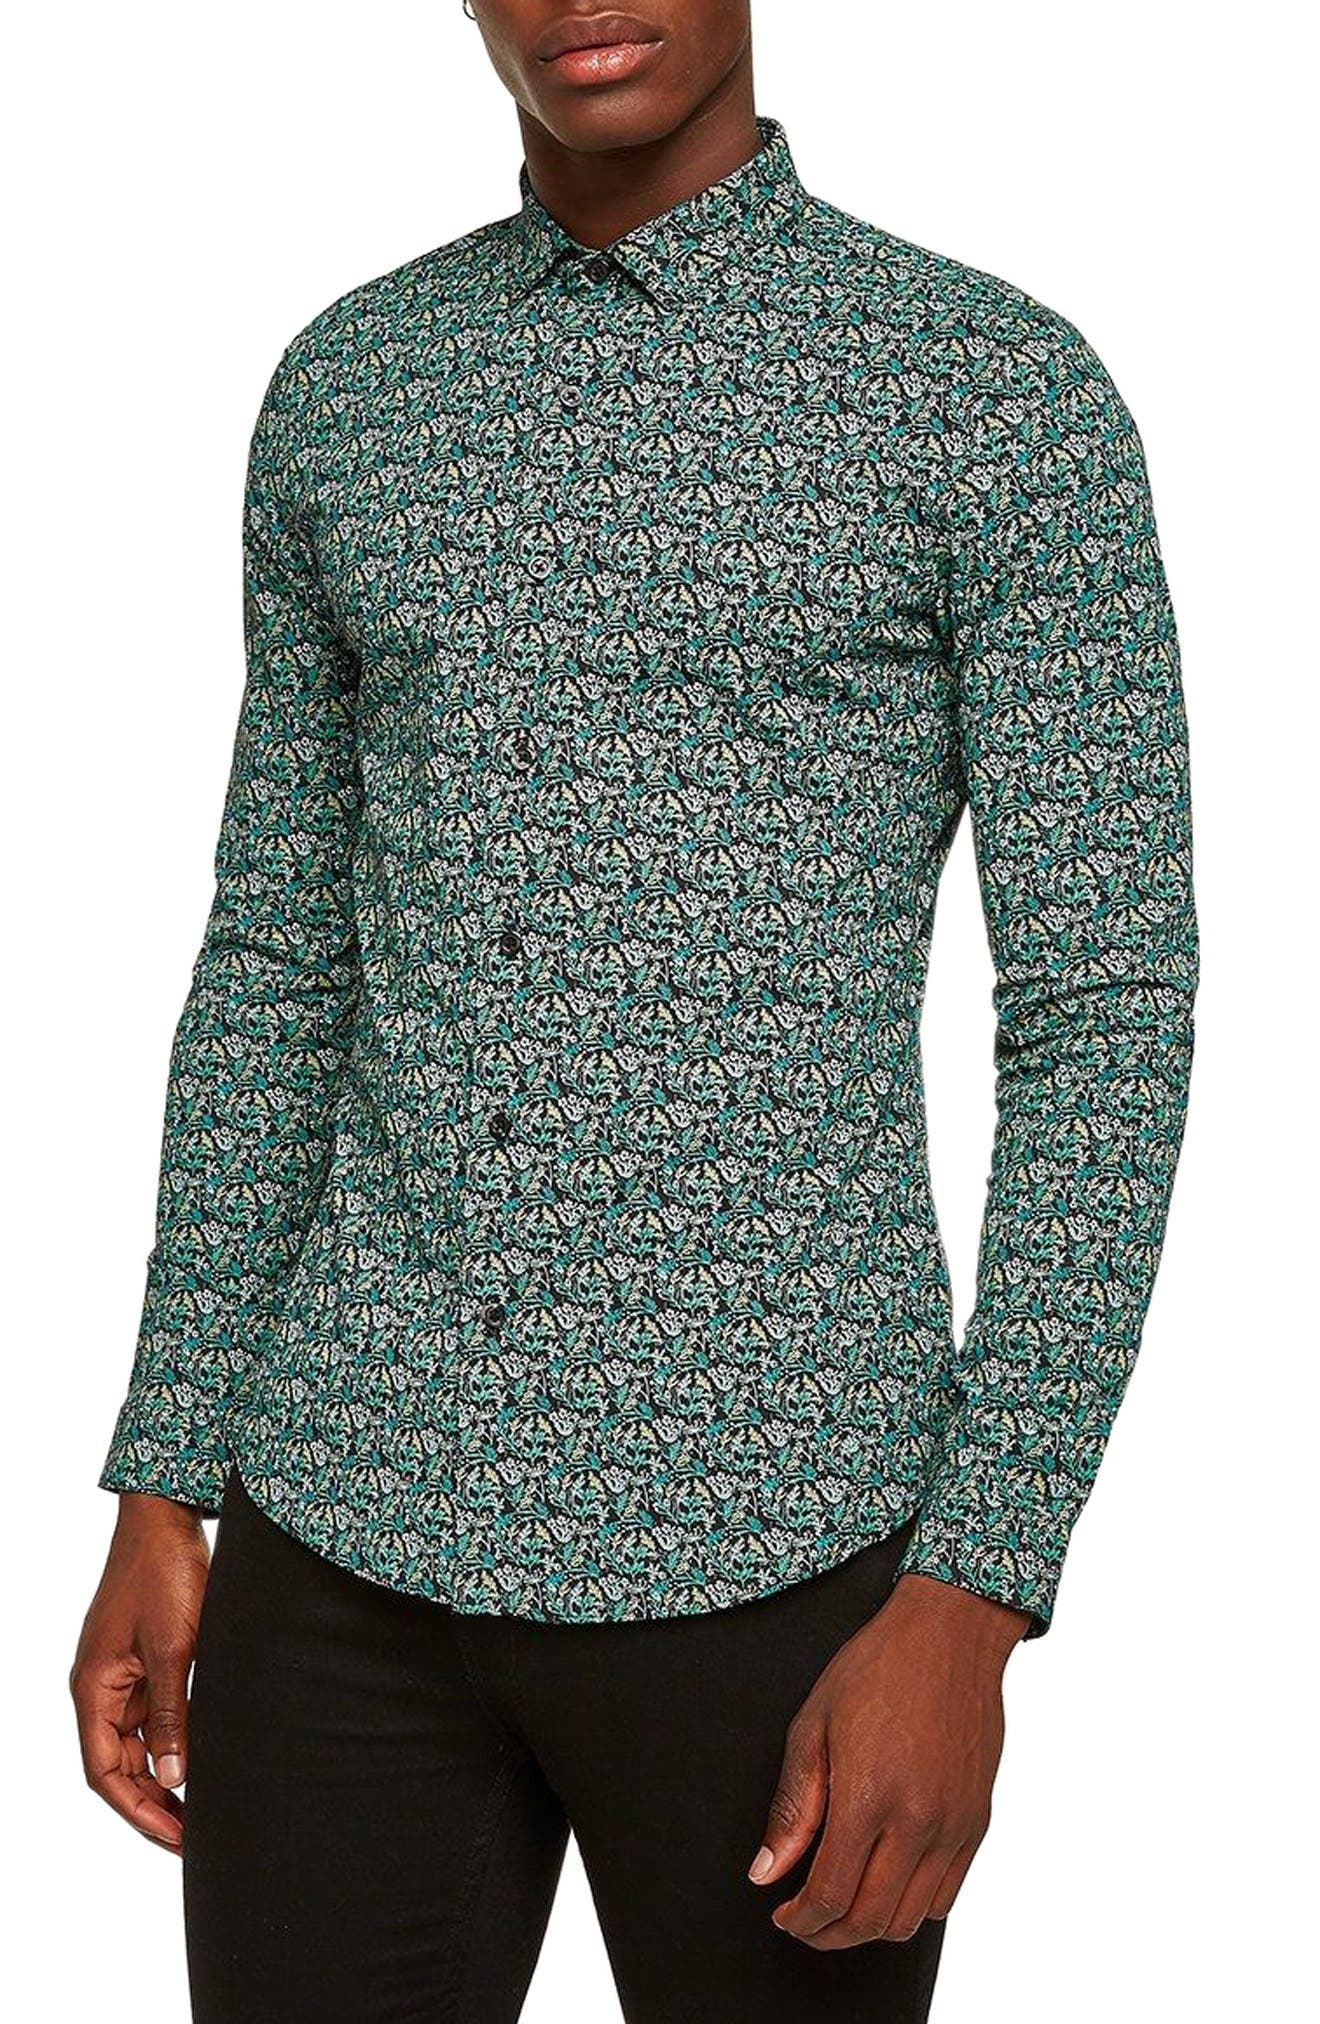 Topman Dark Garden Muscle Fit Sport Shirt